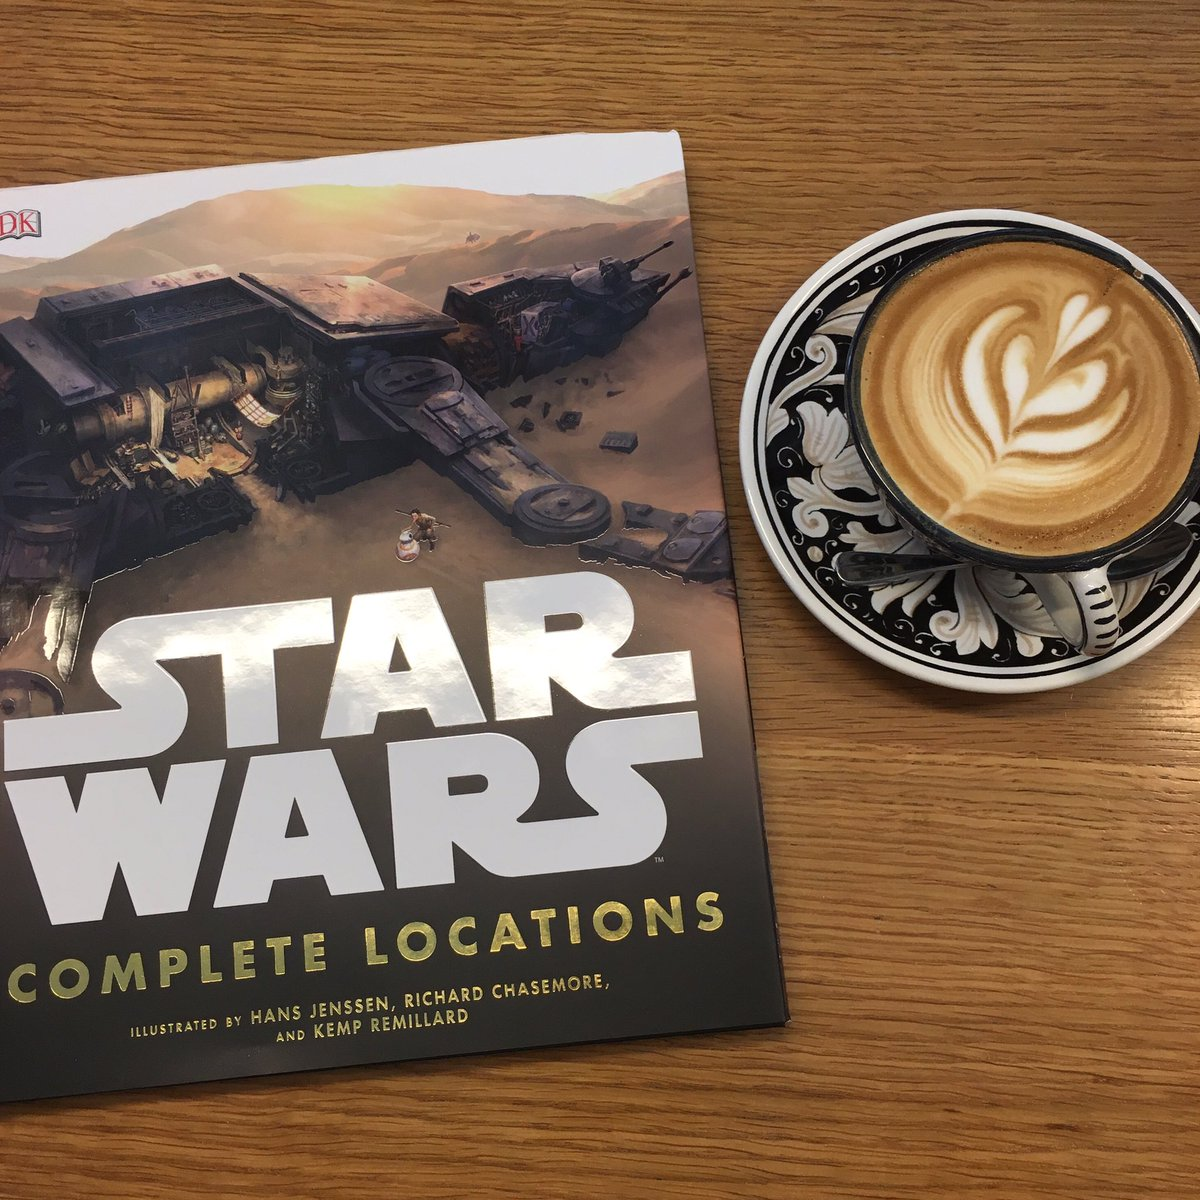 Grab a coffee and travel to a galaxy far, far away... Star Wars: Complete Locations is out today bit.ly2dcVSKf https://t.co/PXgXFaX8Fx